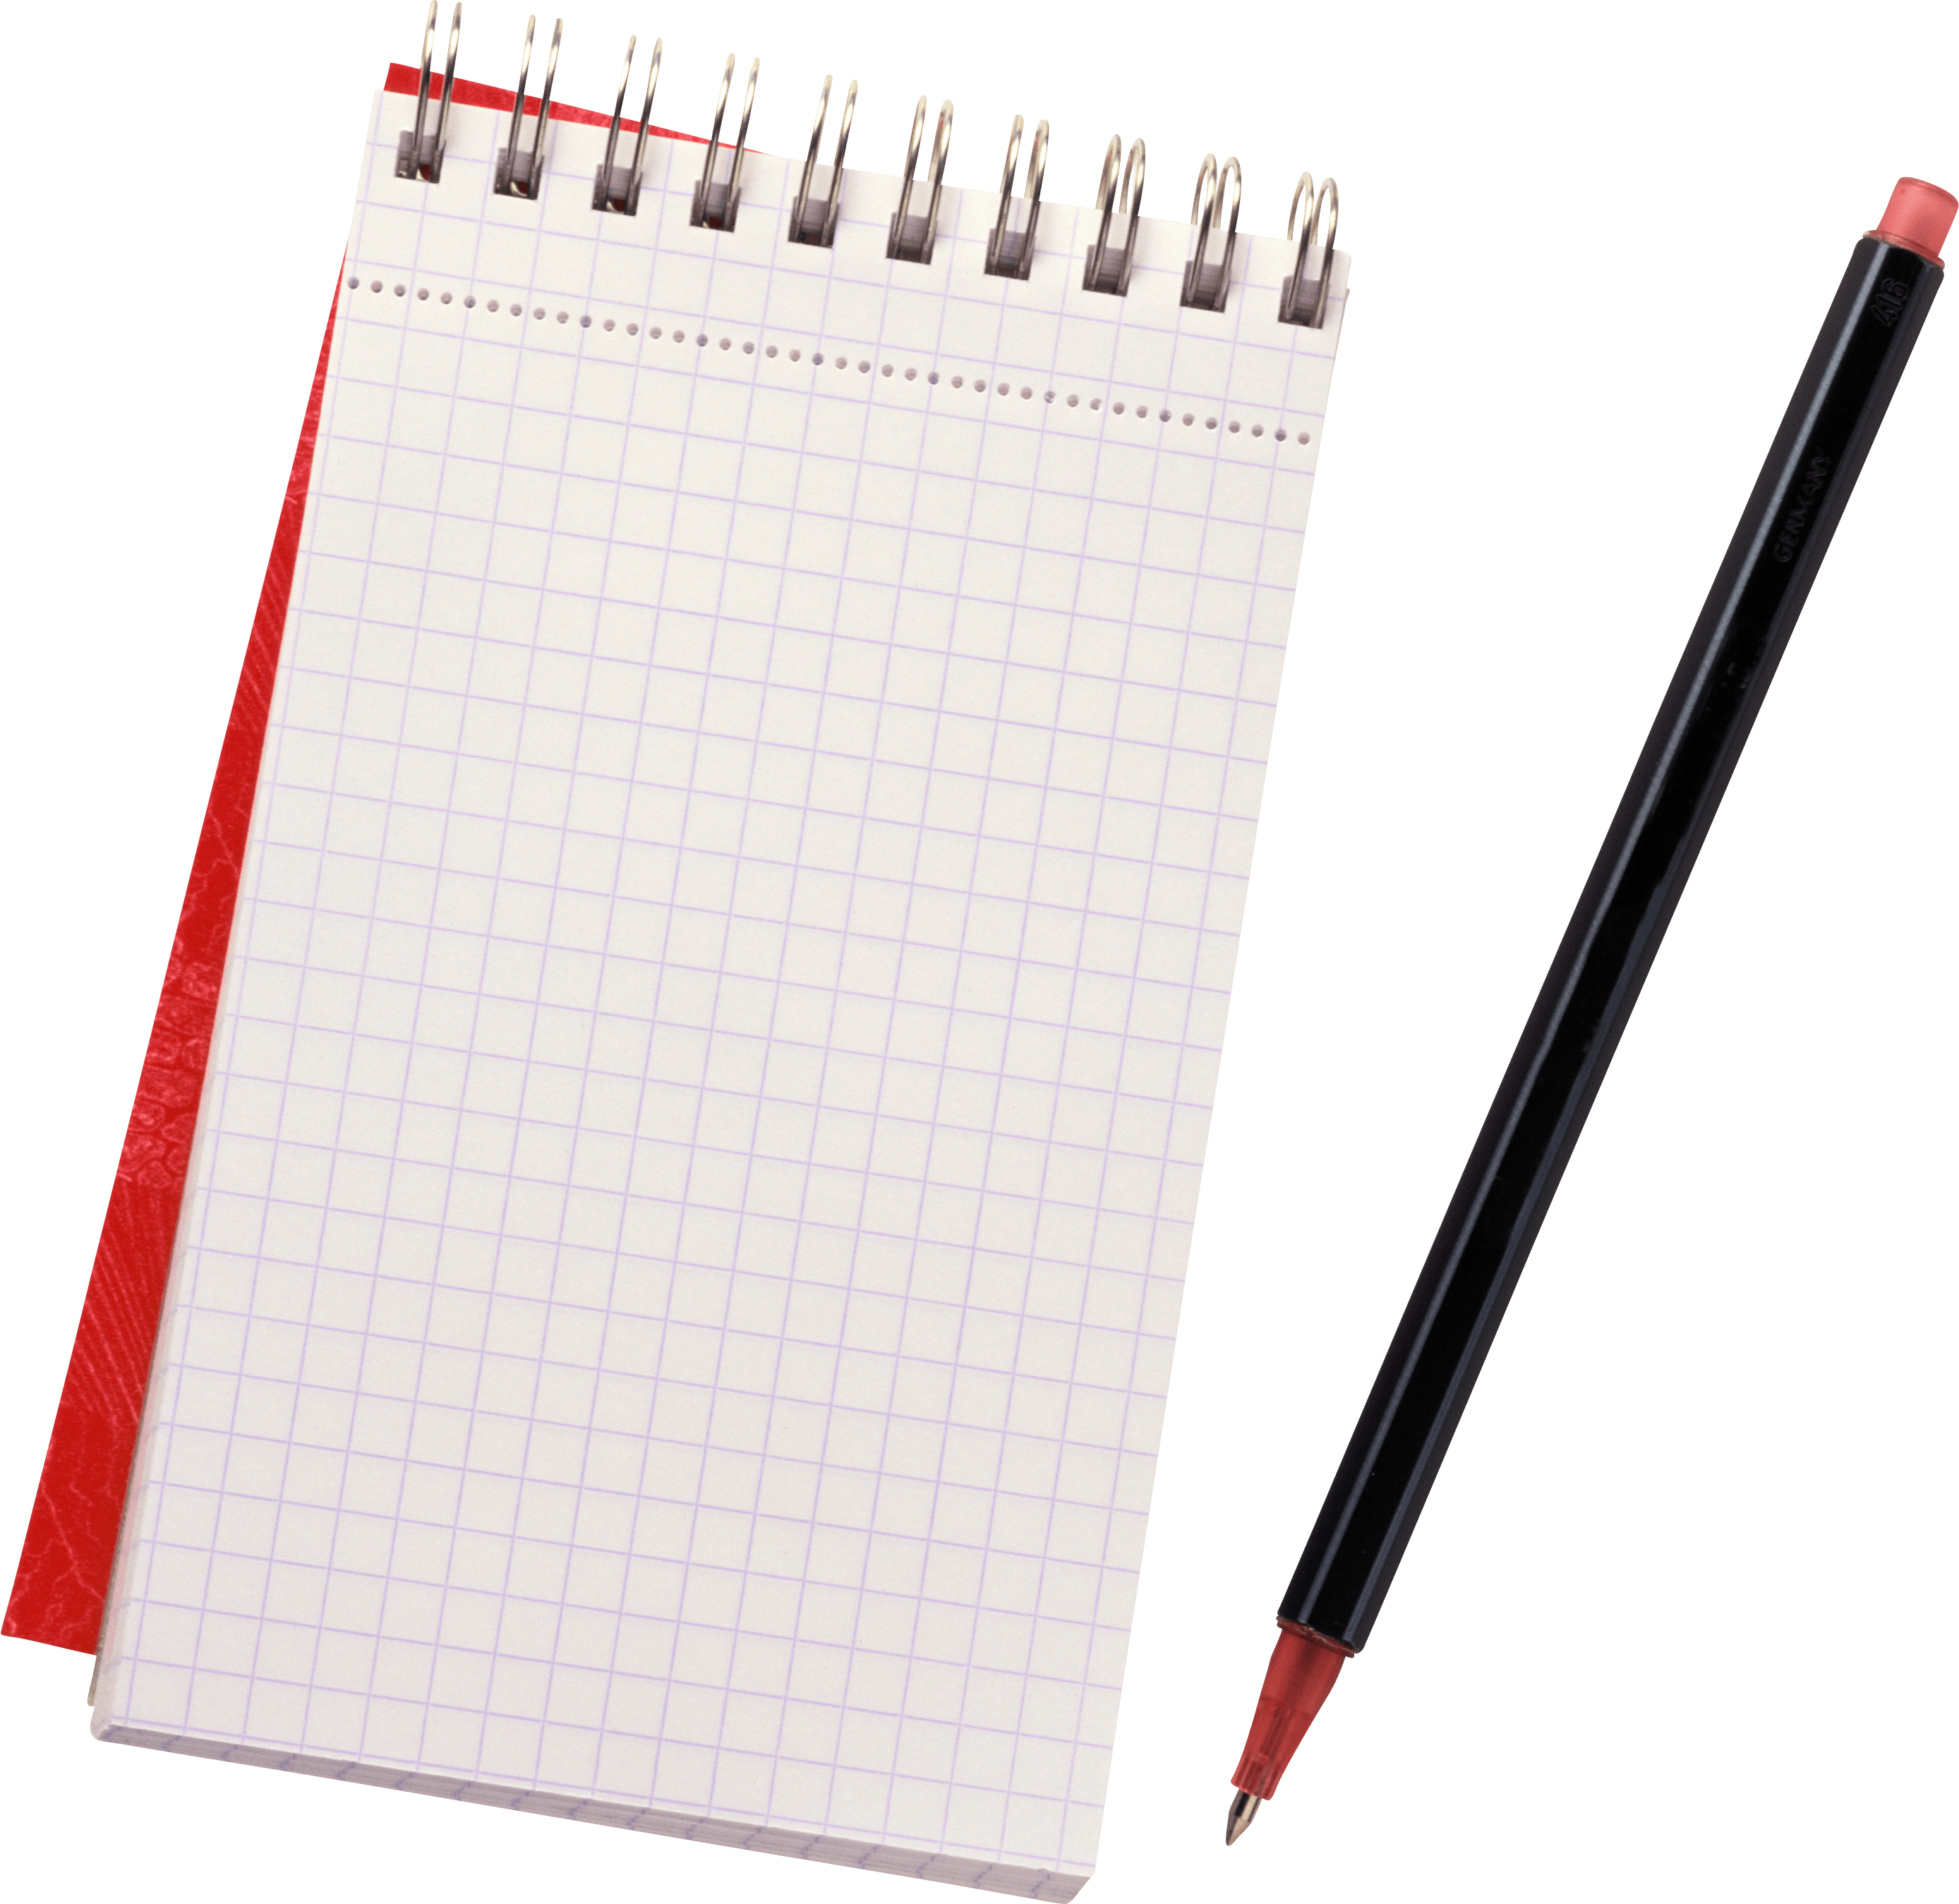 Notepad transparent PNG.